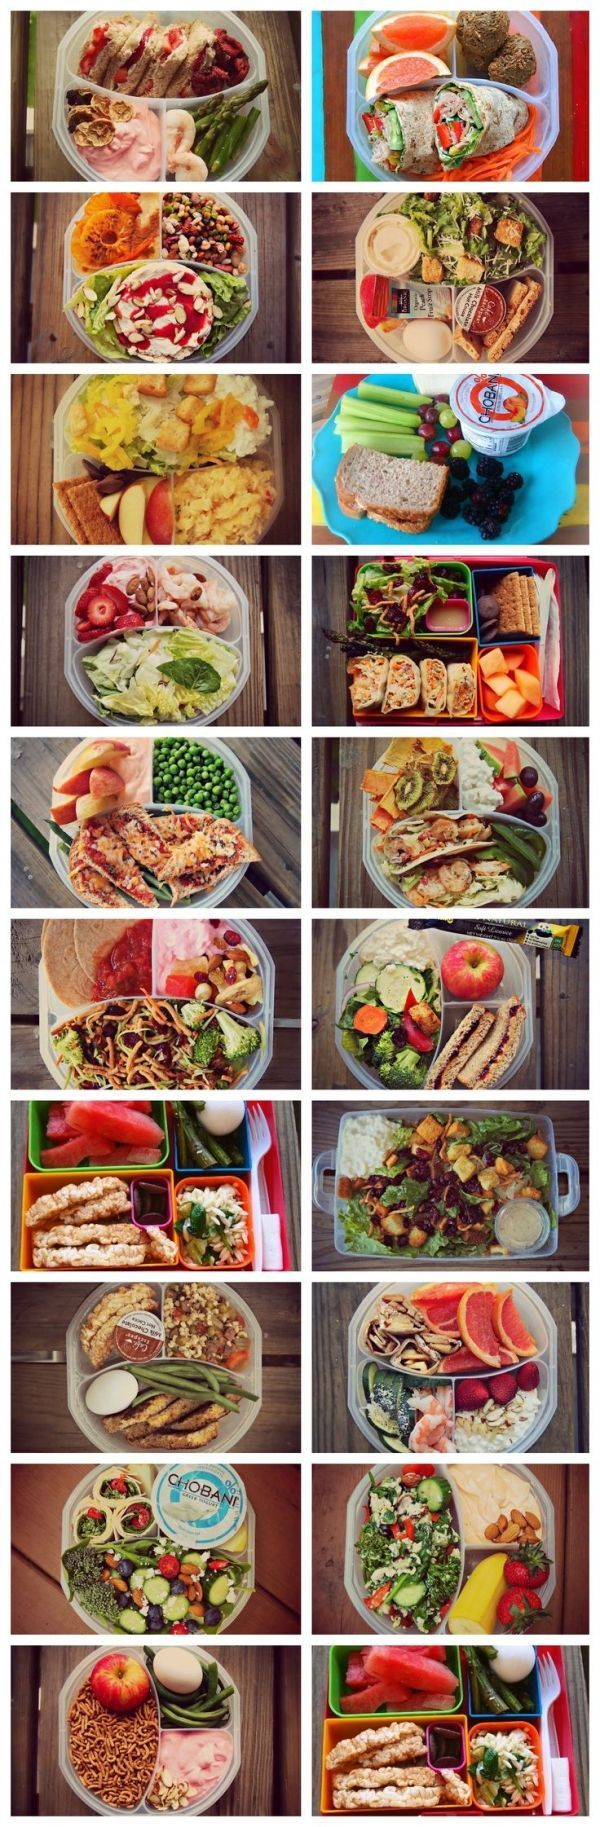 Healthy Lunch Ideas Healthy Food Recipes Pinterest Healthy